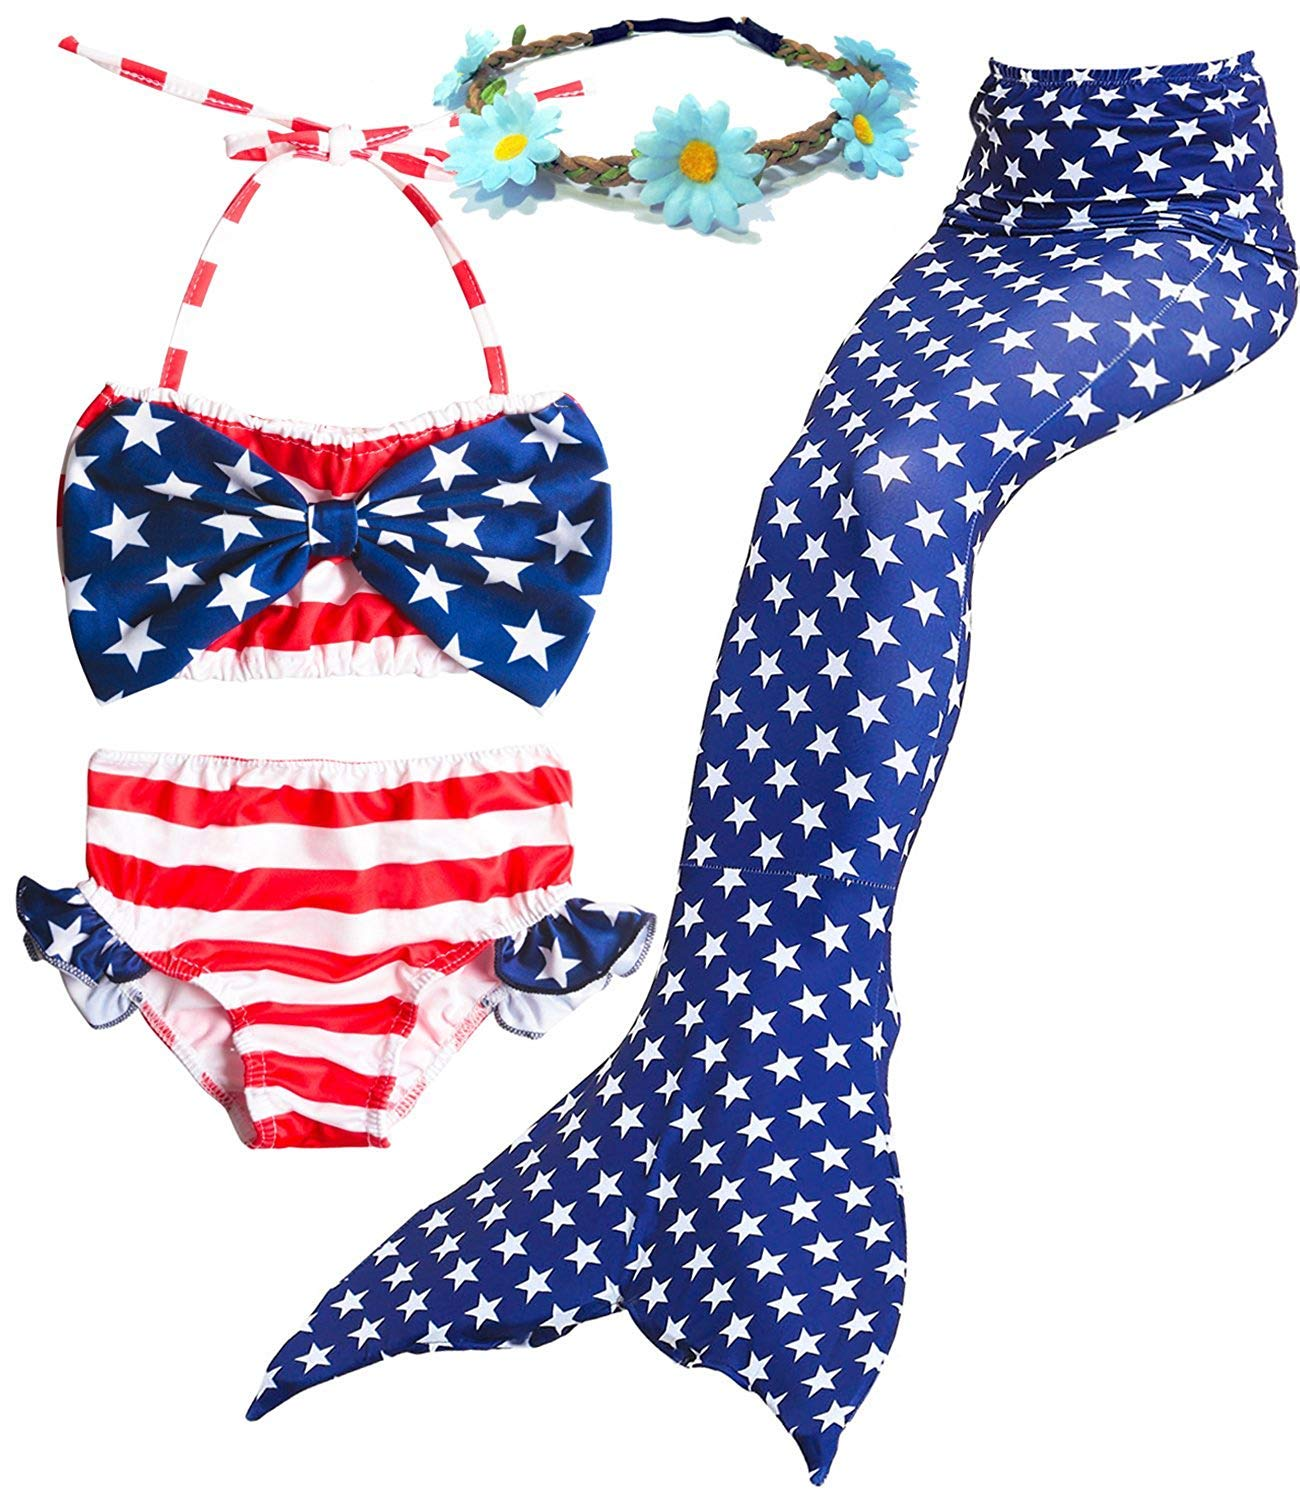 91e53ce401aca Galleon - 4PCs Girls Mermaid Tails Swimsuits American Flag Sea-Maid  Princess Bikini Set